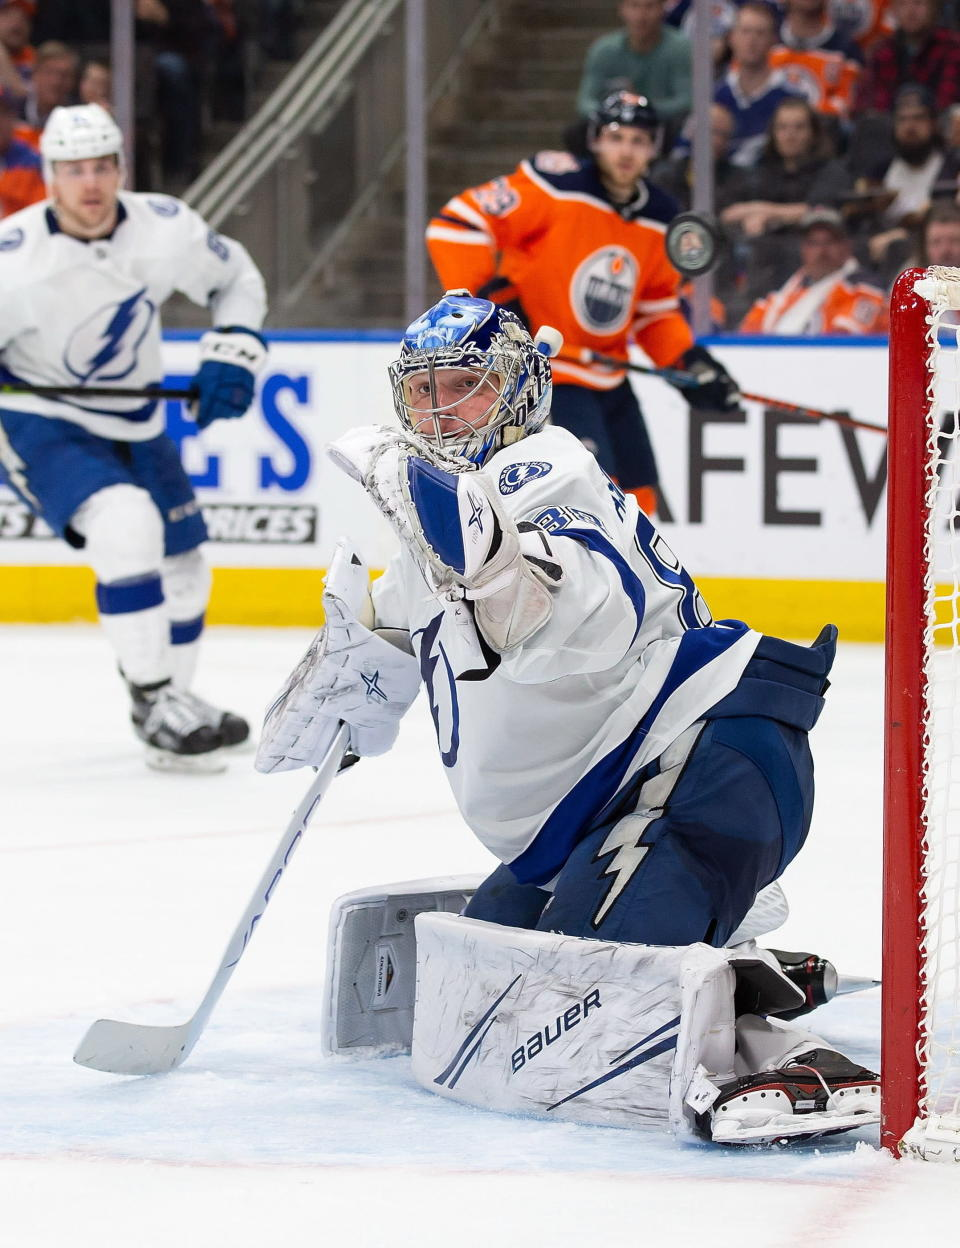 Tampa Bay Lightning goaltender Andrei Vasilevskiy (88) makes a save against the Edmonton Oilers during the second period of an NHL hockey game Saturday, Dec. 22, 2018, in Edmonton, Alberta. (Codie McLachlan/The Canadian Press via AP)